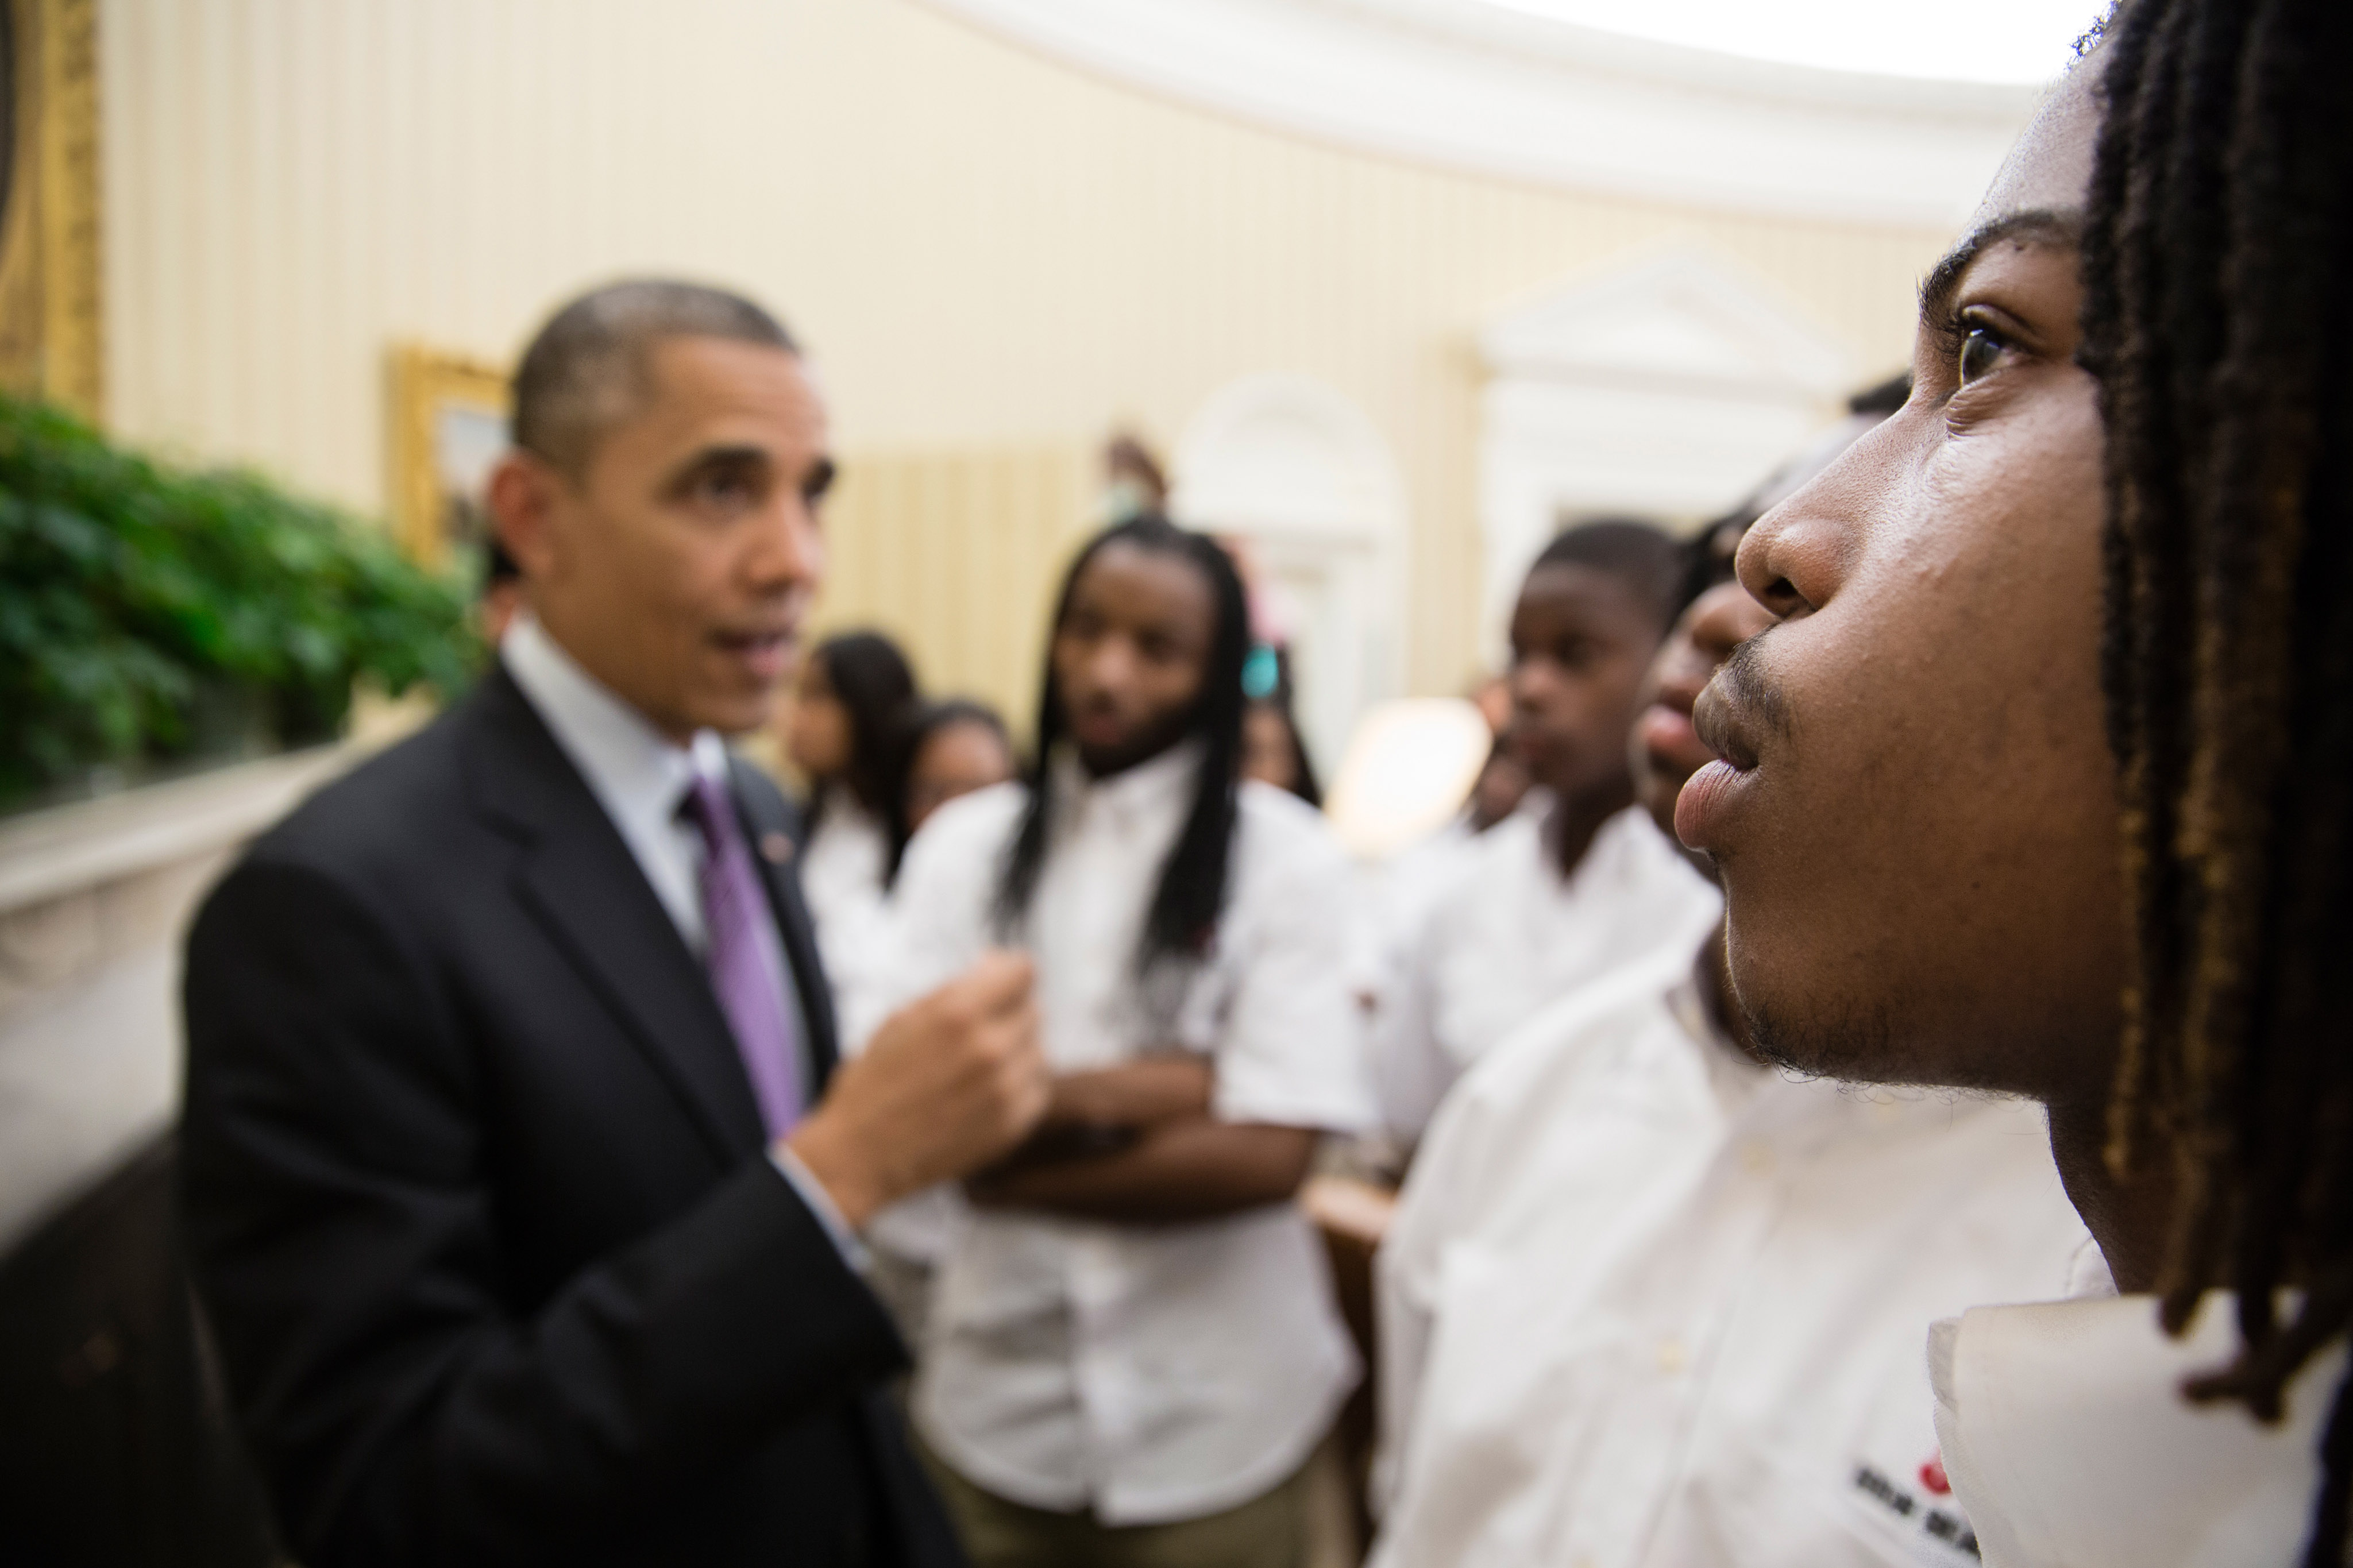 Students from William R. Harper High School in Chicago, Ill., listen as President Barack Obama talks with them about the Emancipation Proclamation hanging in the Oval Office, June 5, 2013.